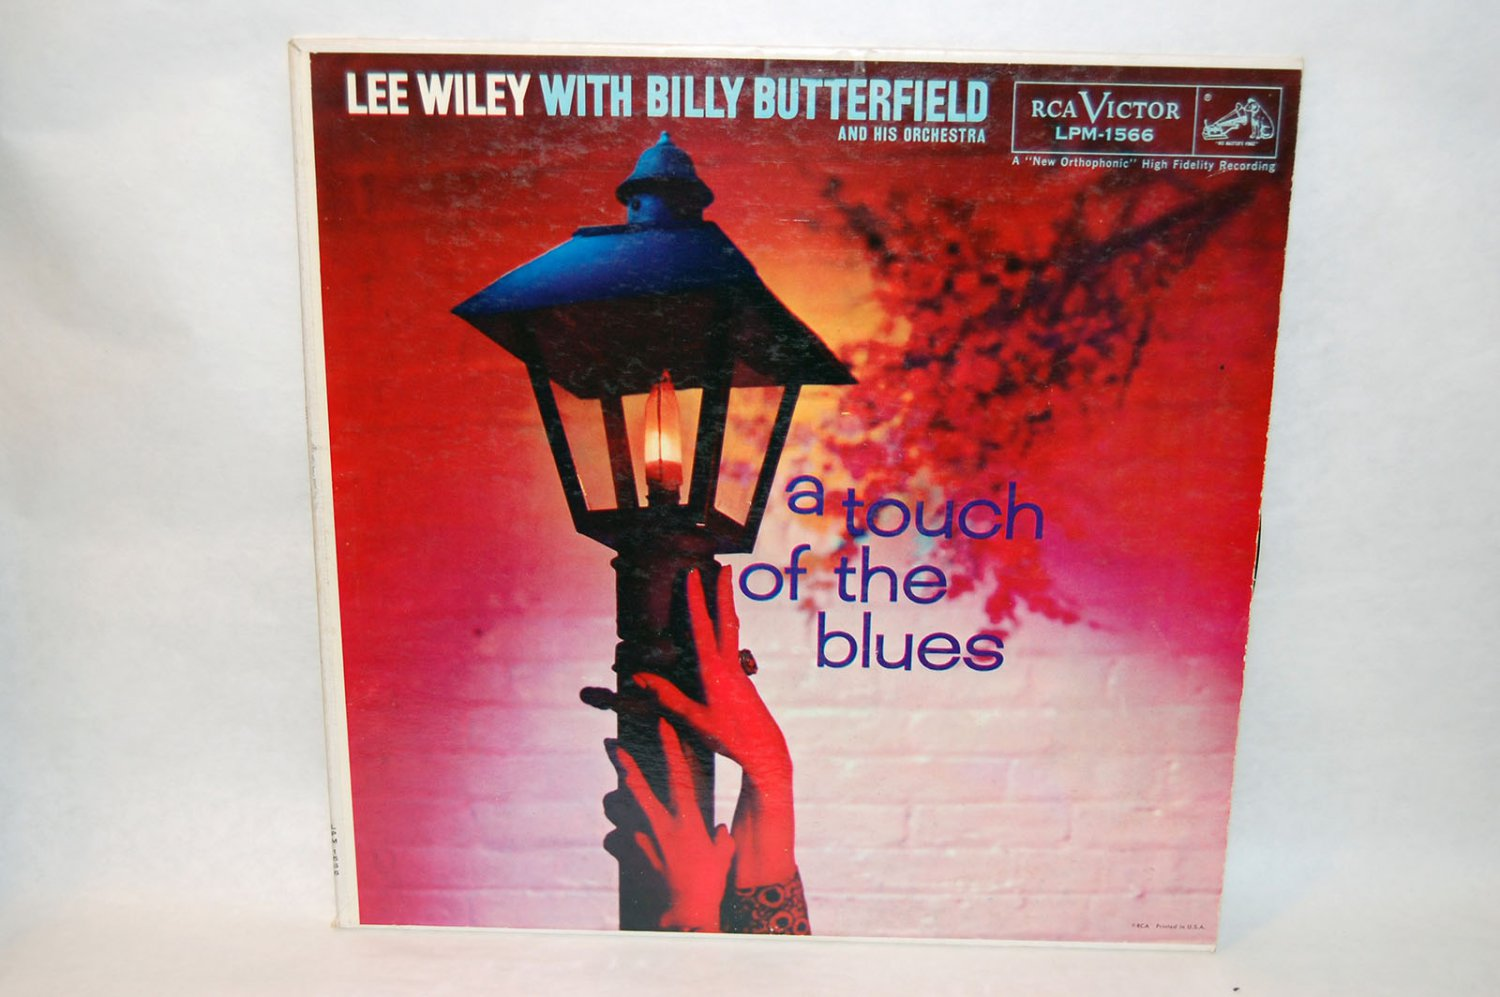 "LEE WILEY WITH BILLY BUTTERFIELD A Touch Of The Blues 12"" Vinyl LP RCA"